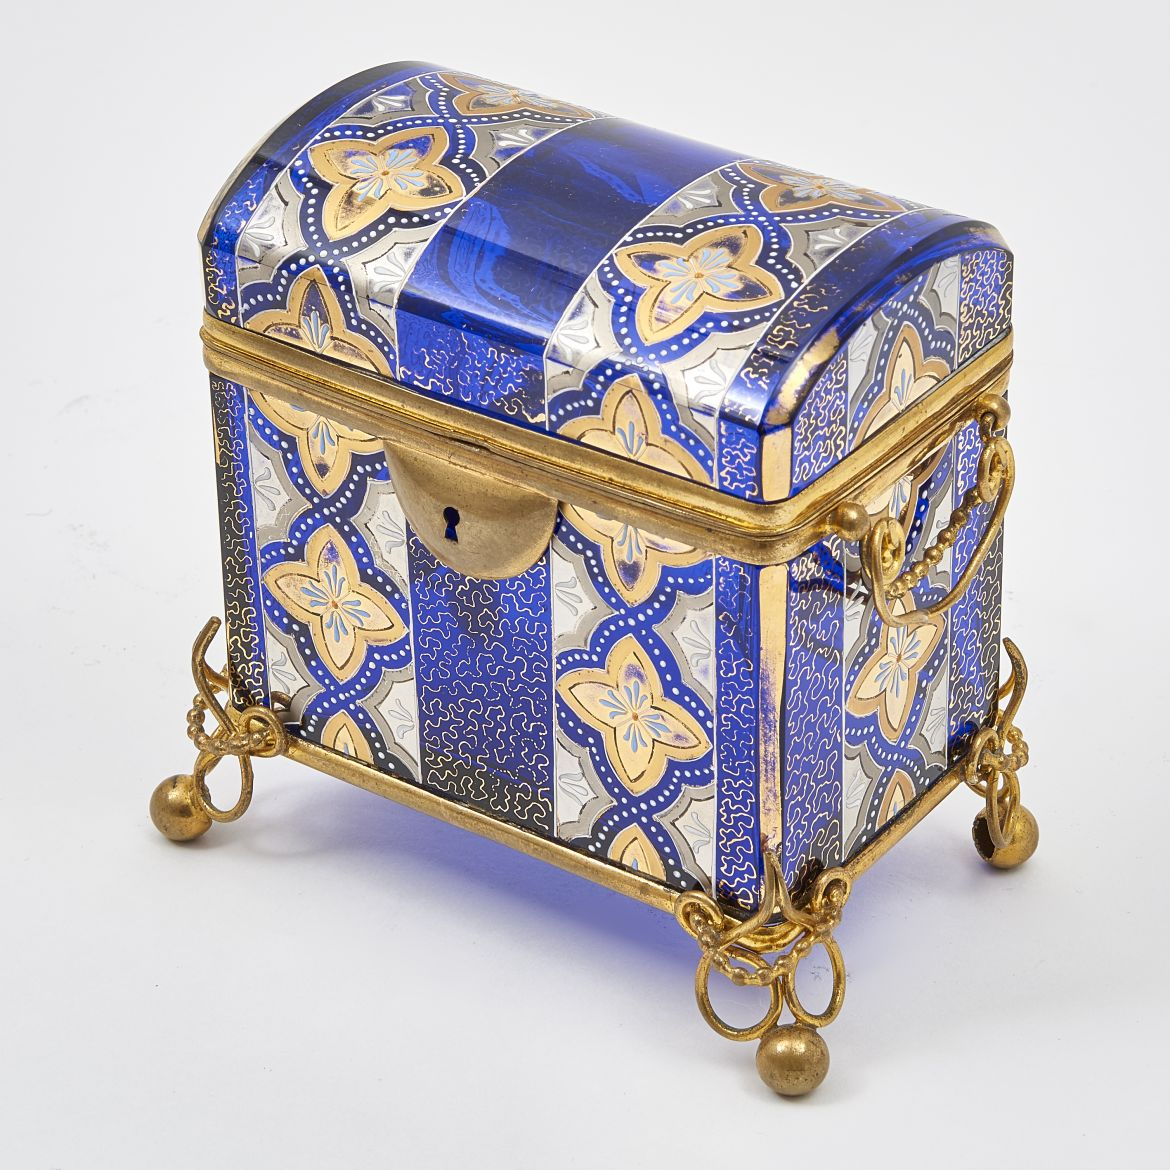 Blue glass and Enamel Box